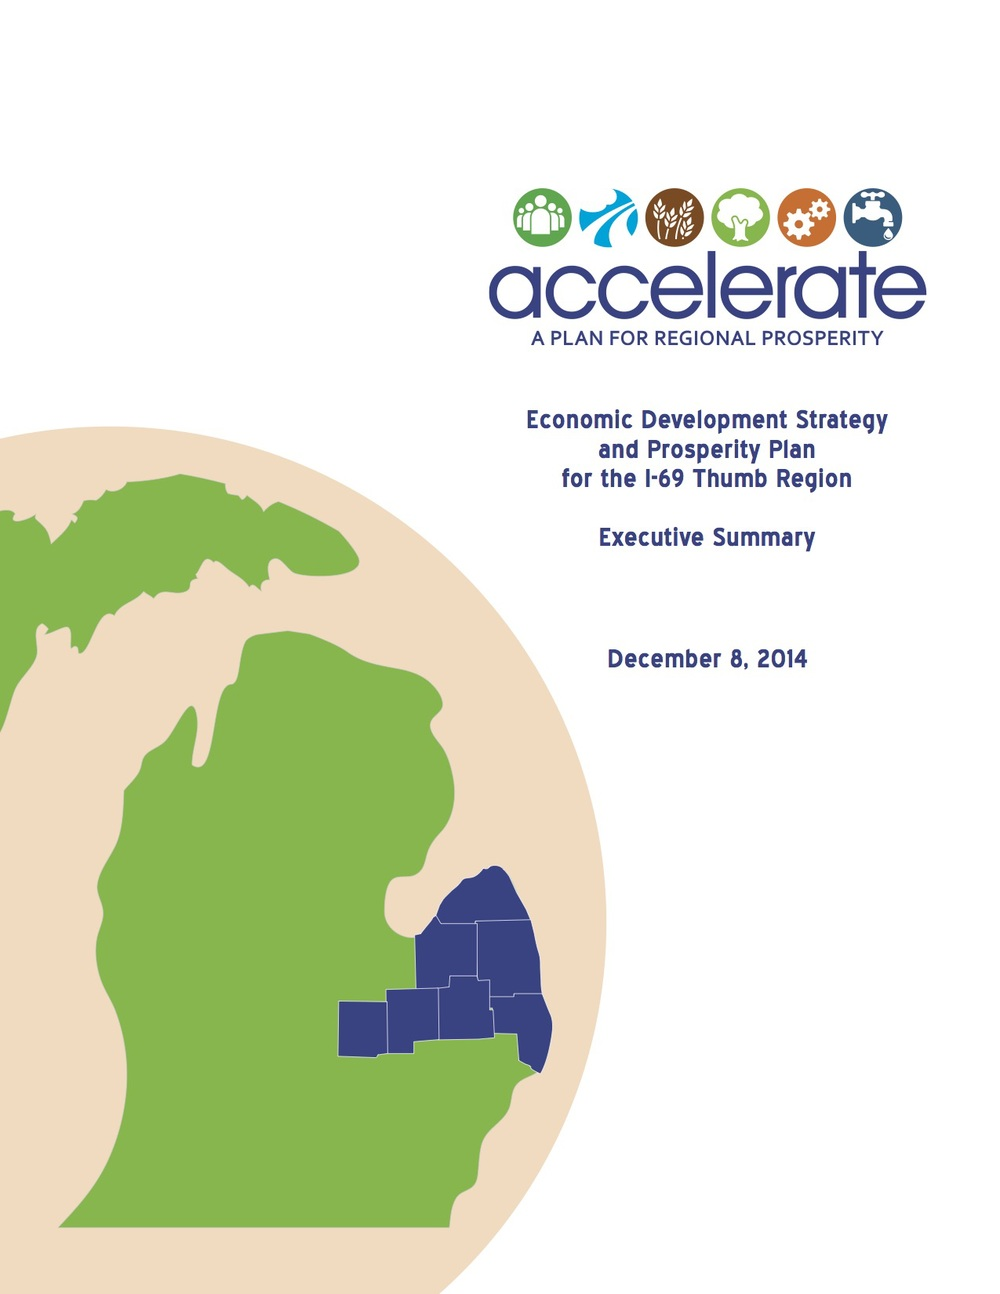 Accelerate. A Plan for Regional Prosperity